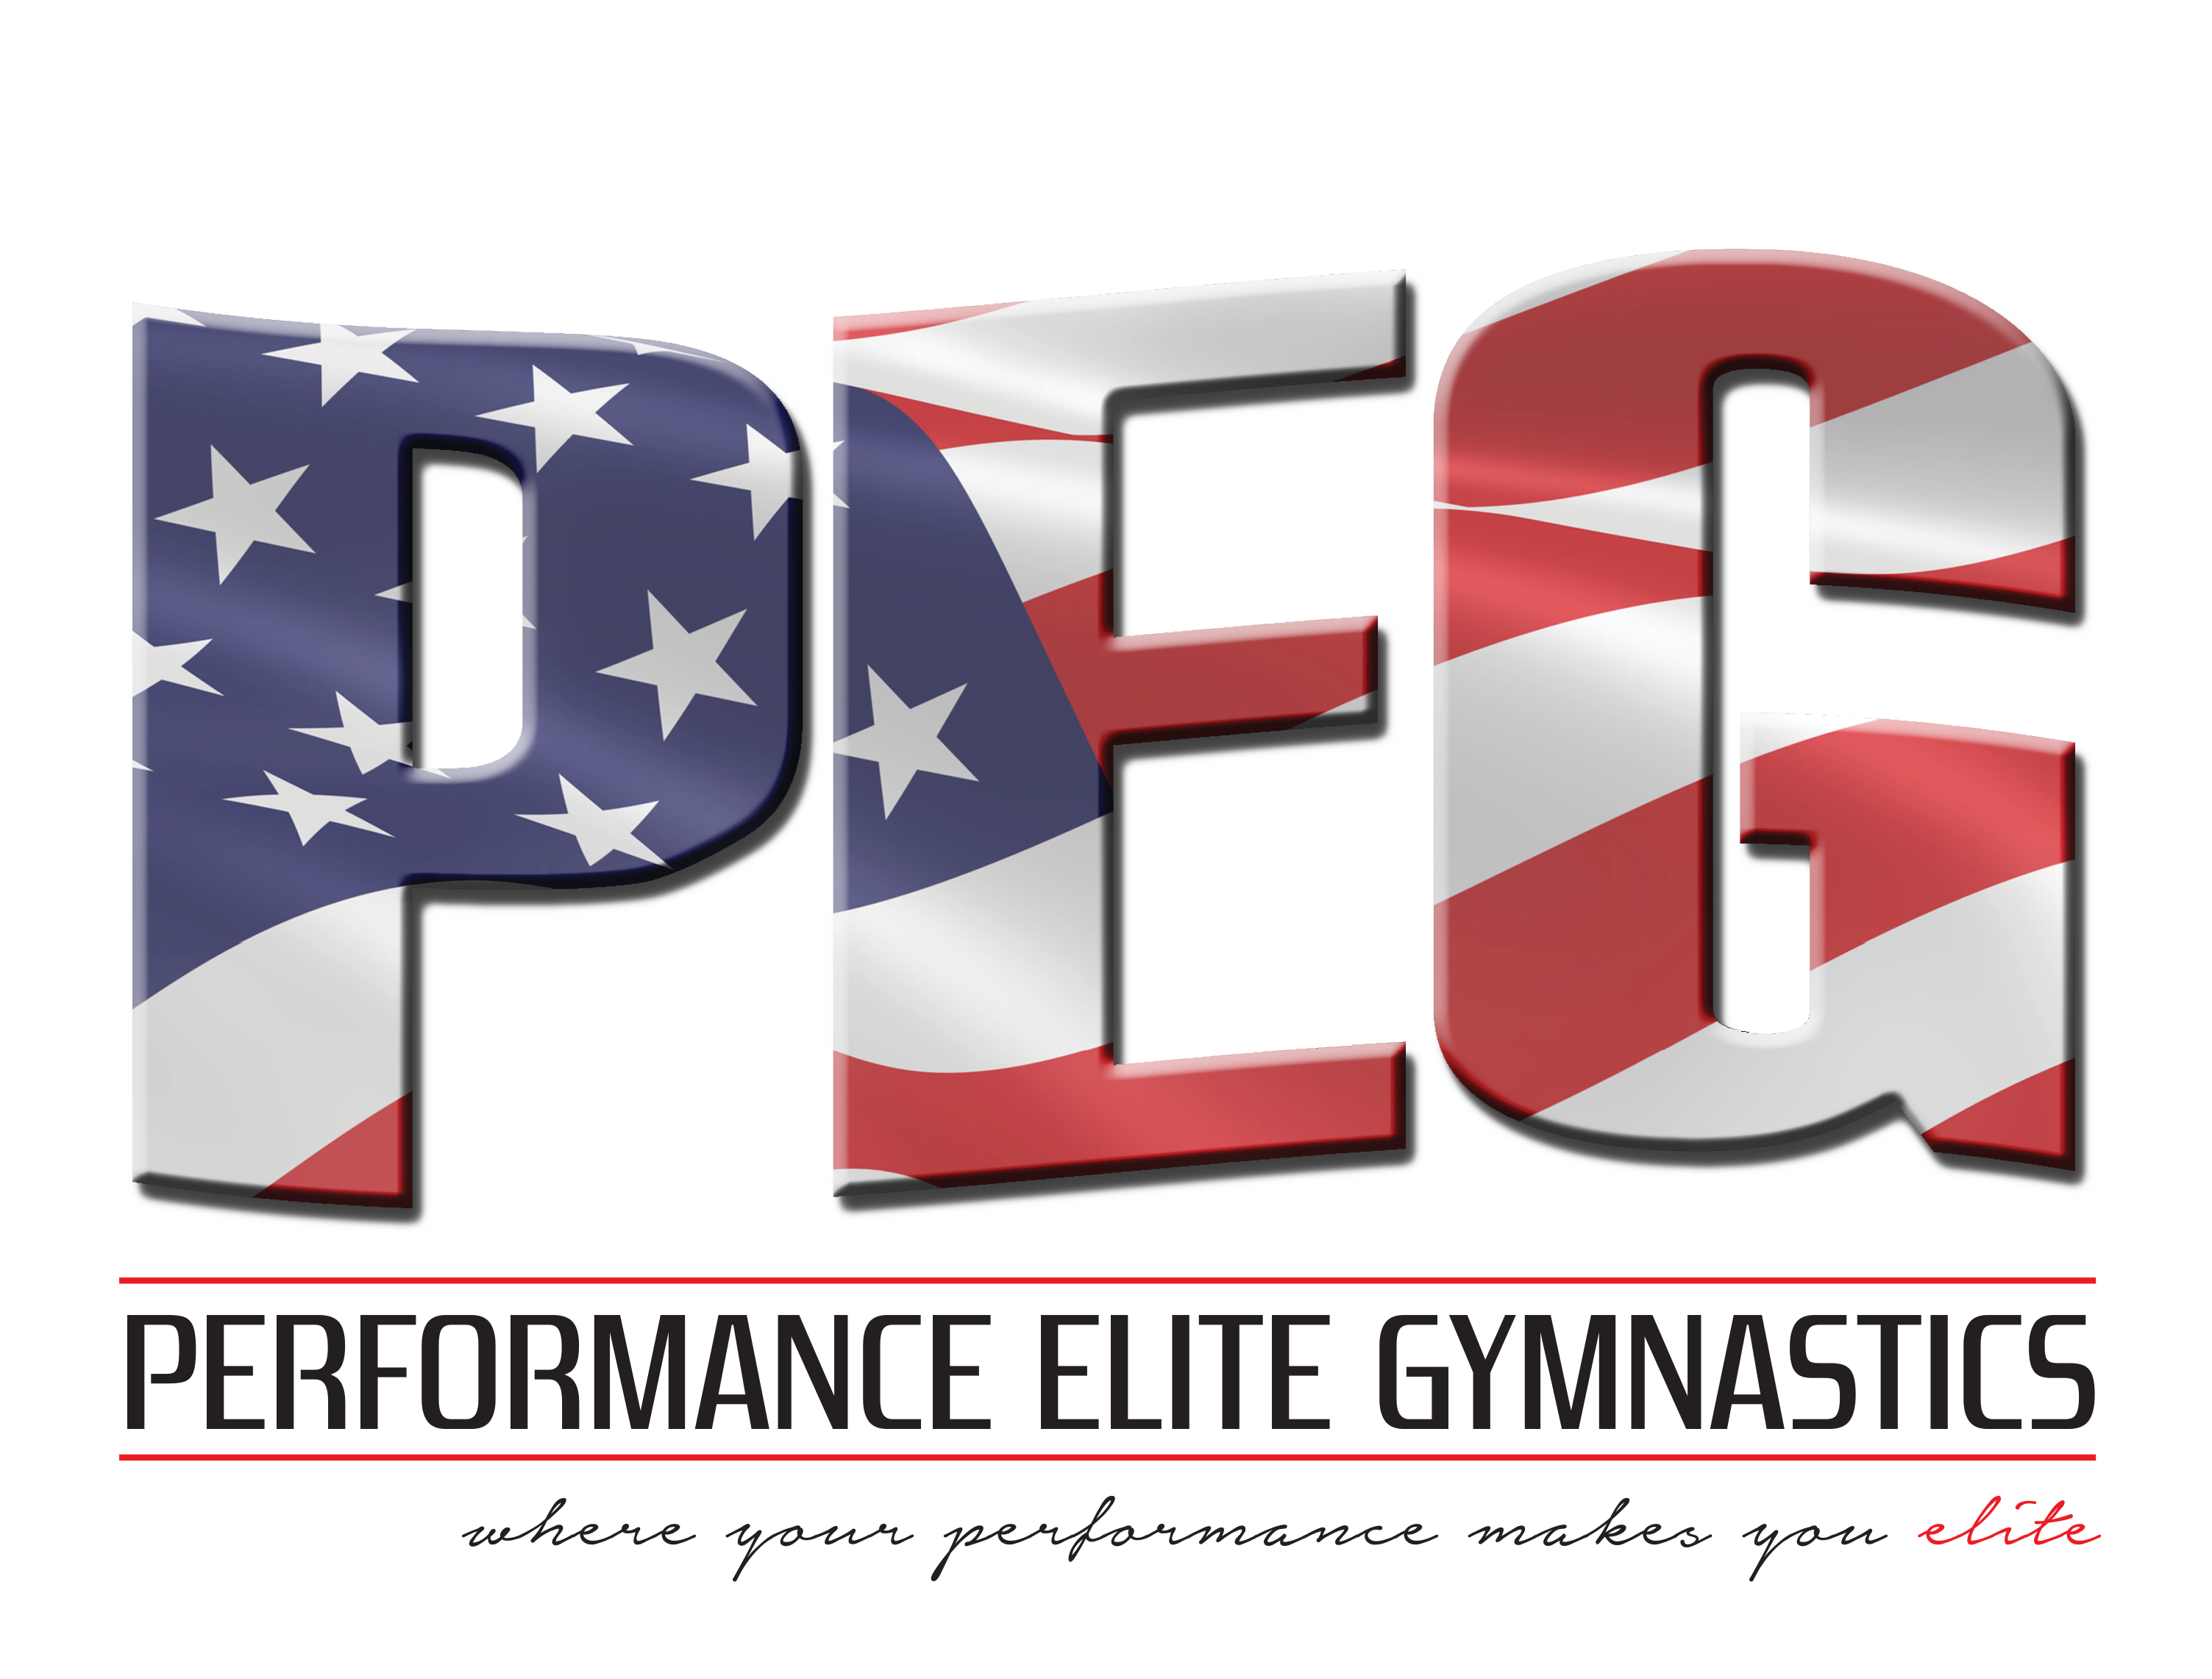 clip free Yes clipart performance highlights. Elite gymnastics home